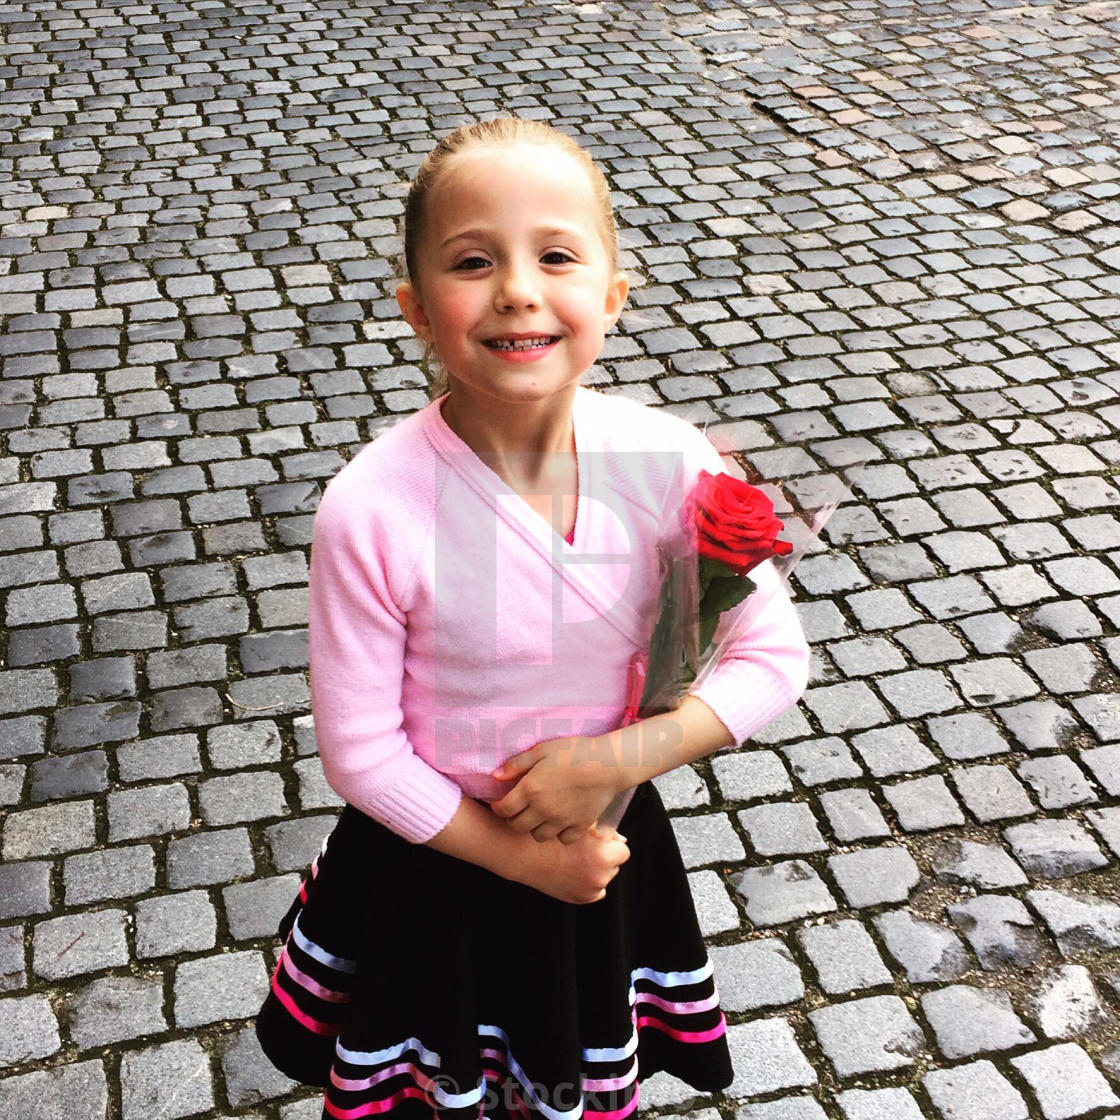 A young girl poses with a red rose after taking her grade 1